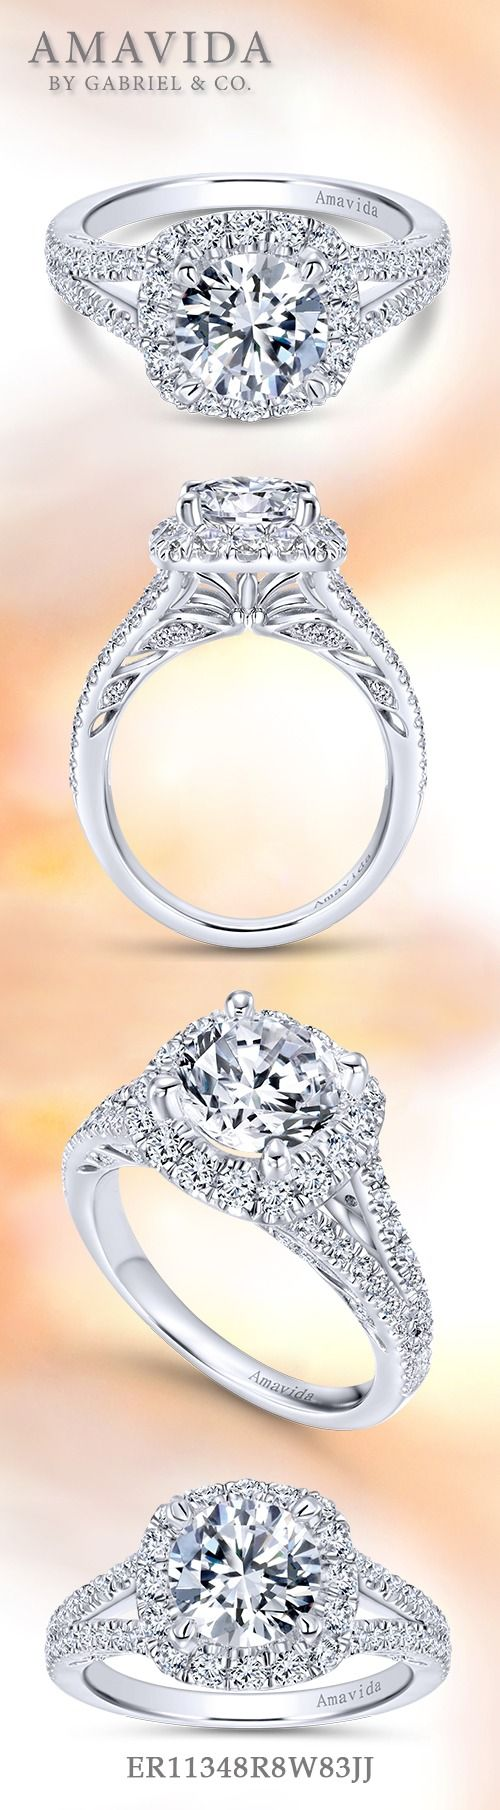 AMAVIDA by Gabriel & Co. - Voted #1 Most Preferred Fine Jewelry and Bridal Brand. A dramatic diamond double halo steals the show in this 18k white gold elegant engagement ring.